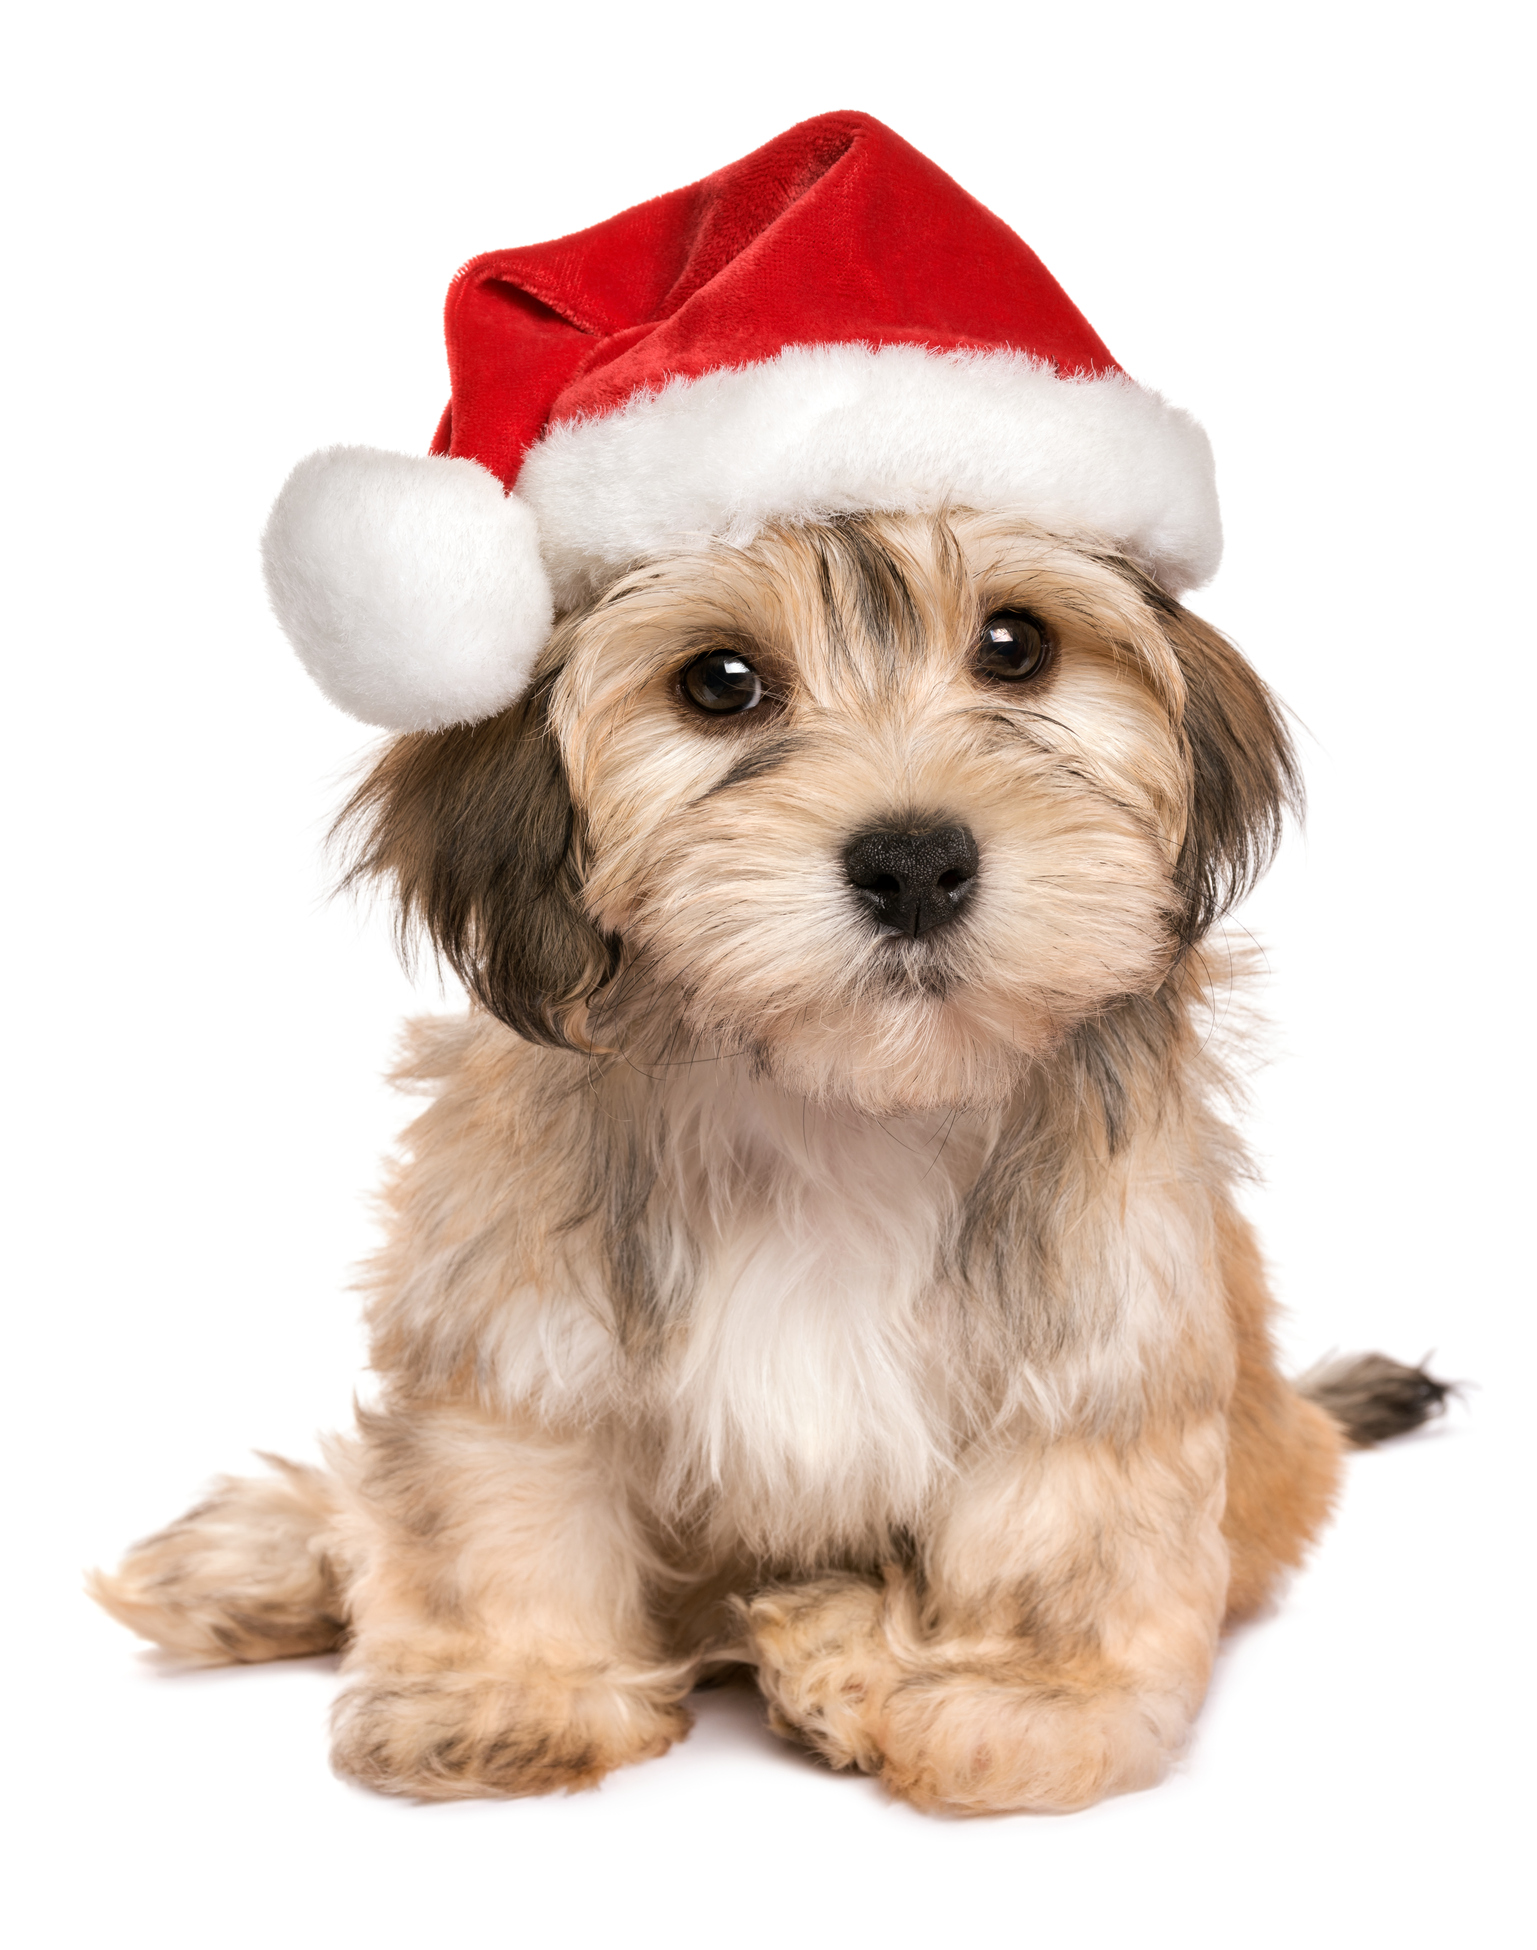 A Puppy For Christmas.Why You Might Rethink Getting That Puppy For Christmas Wtop